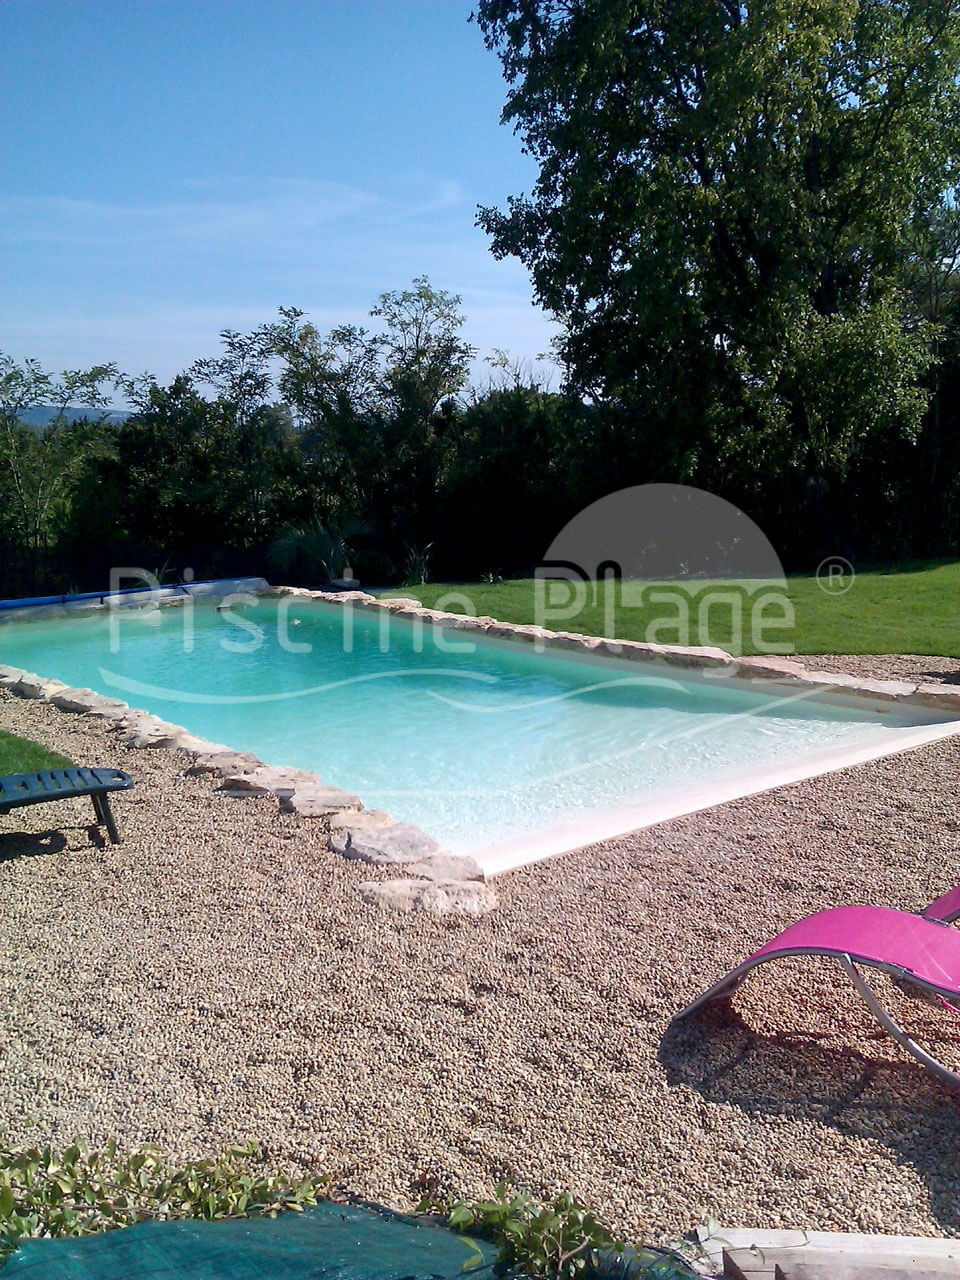 piscine avec plage immerg e valence fr jus poitiers. Black Bedroom Furniture Sets. Home Design Ideas